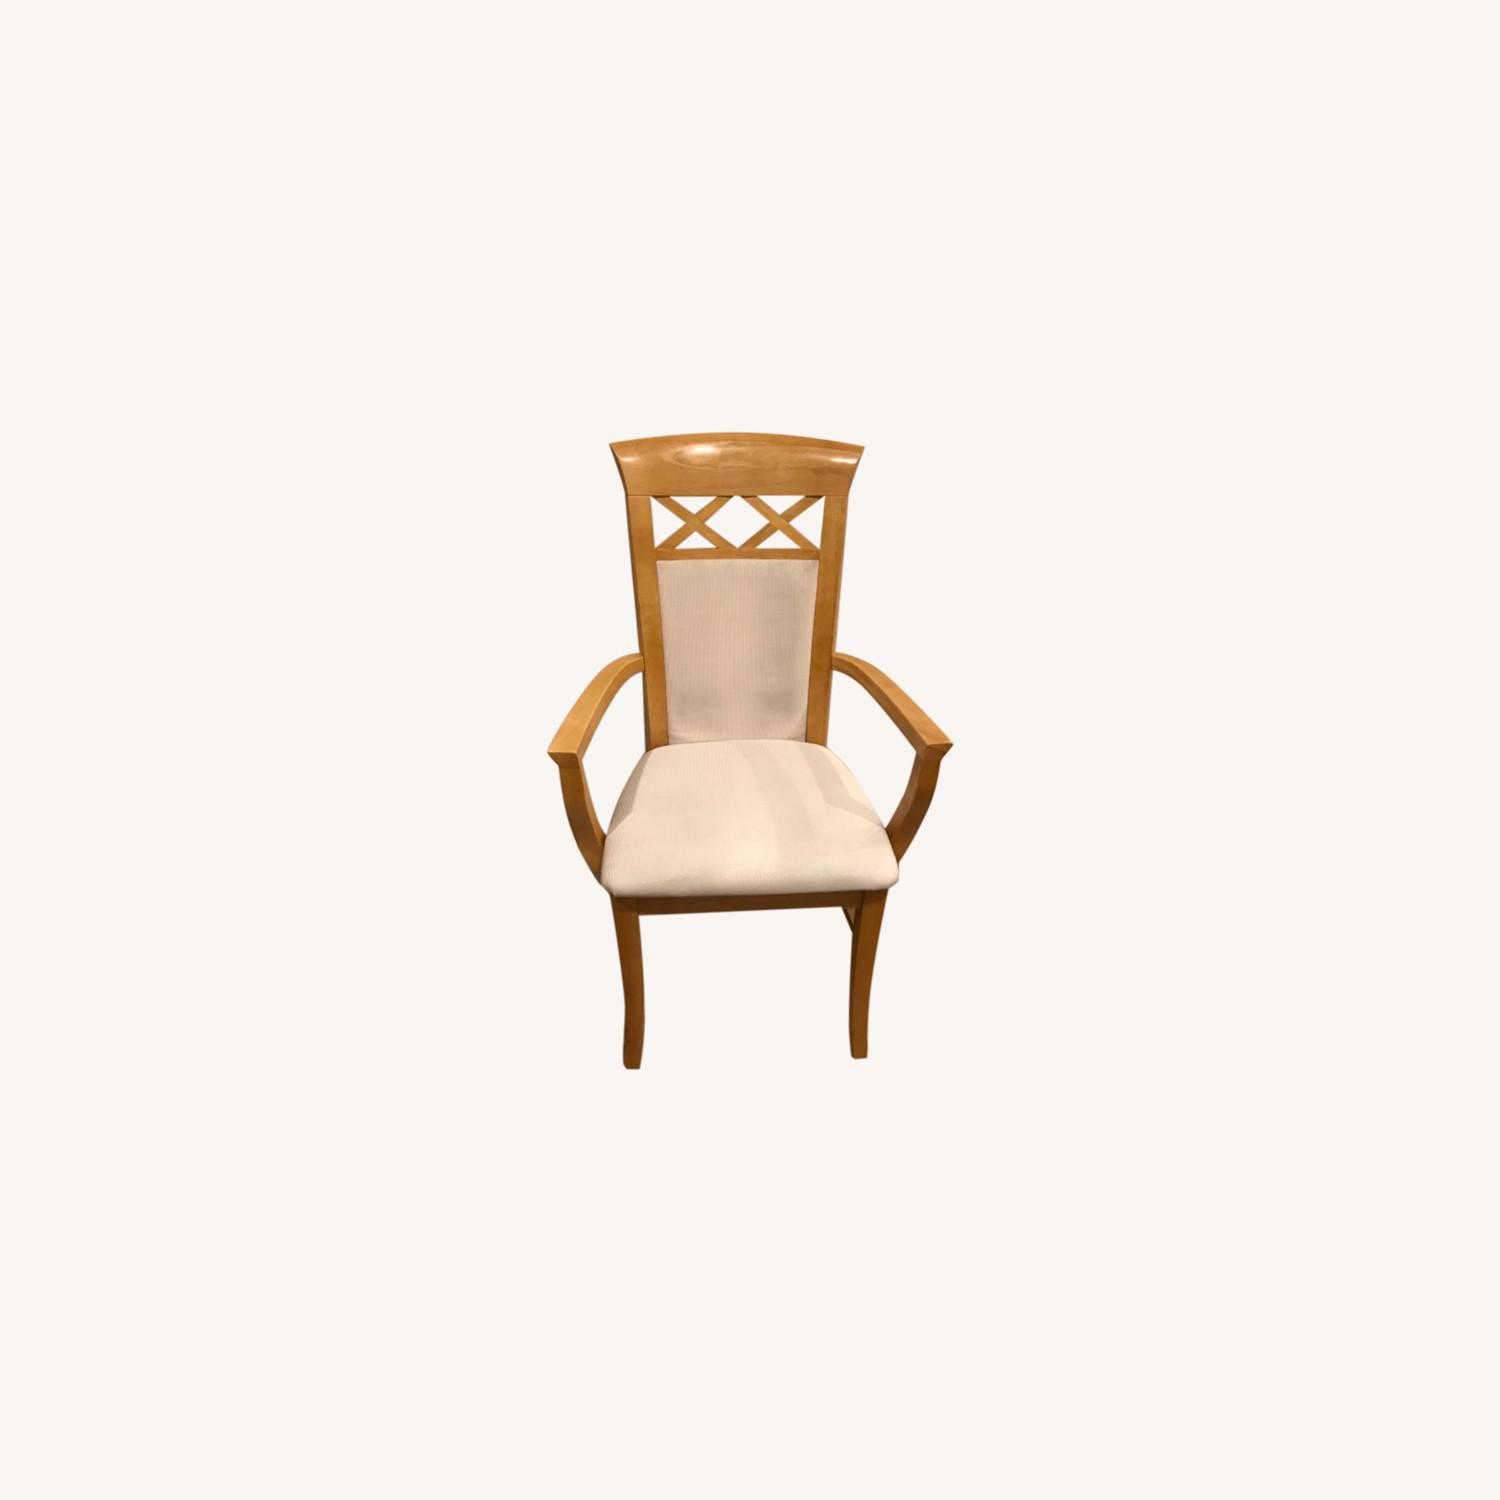 Levitz Furniture Dining Chairs - image-0